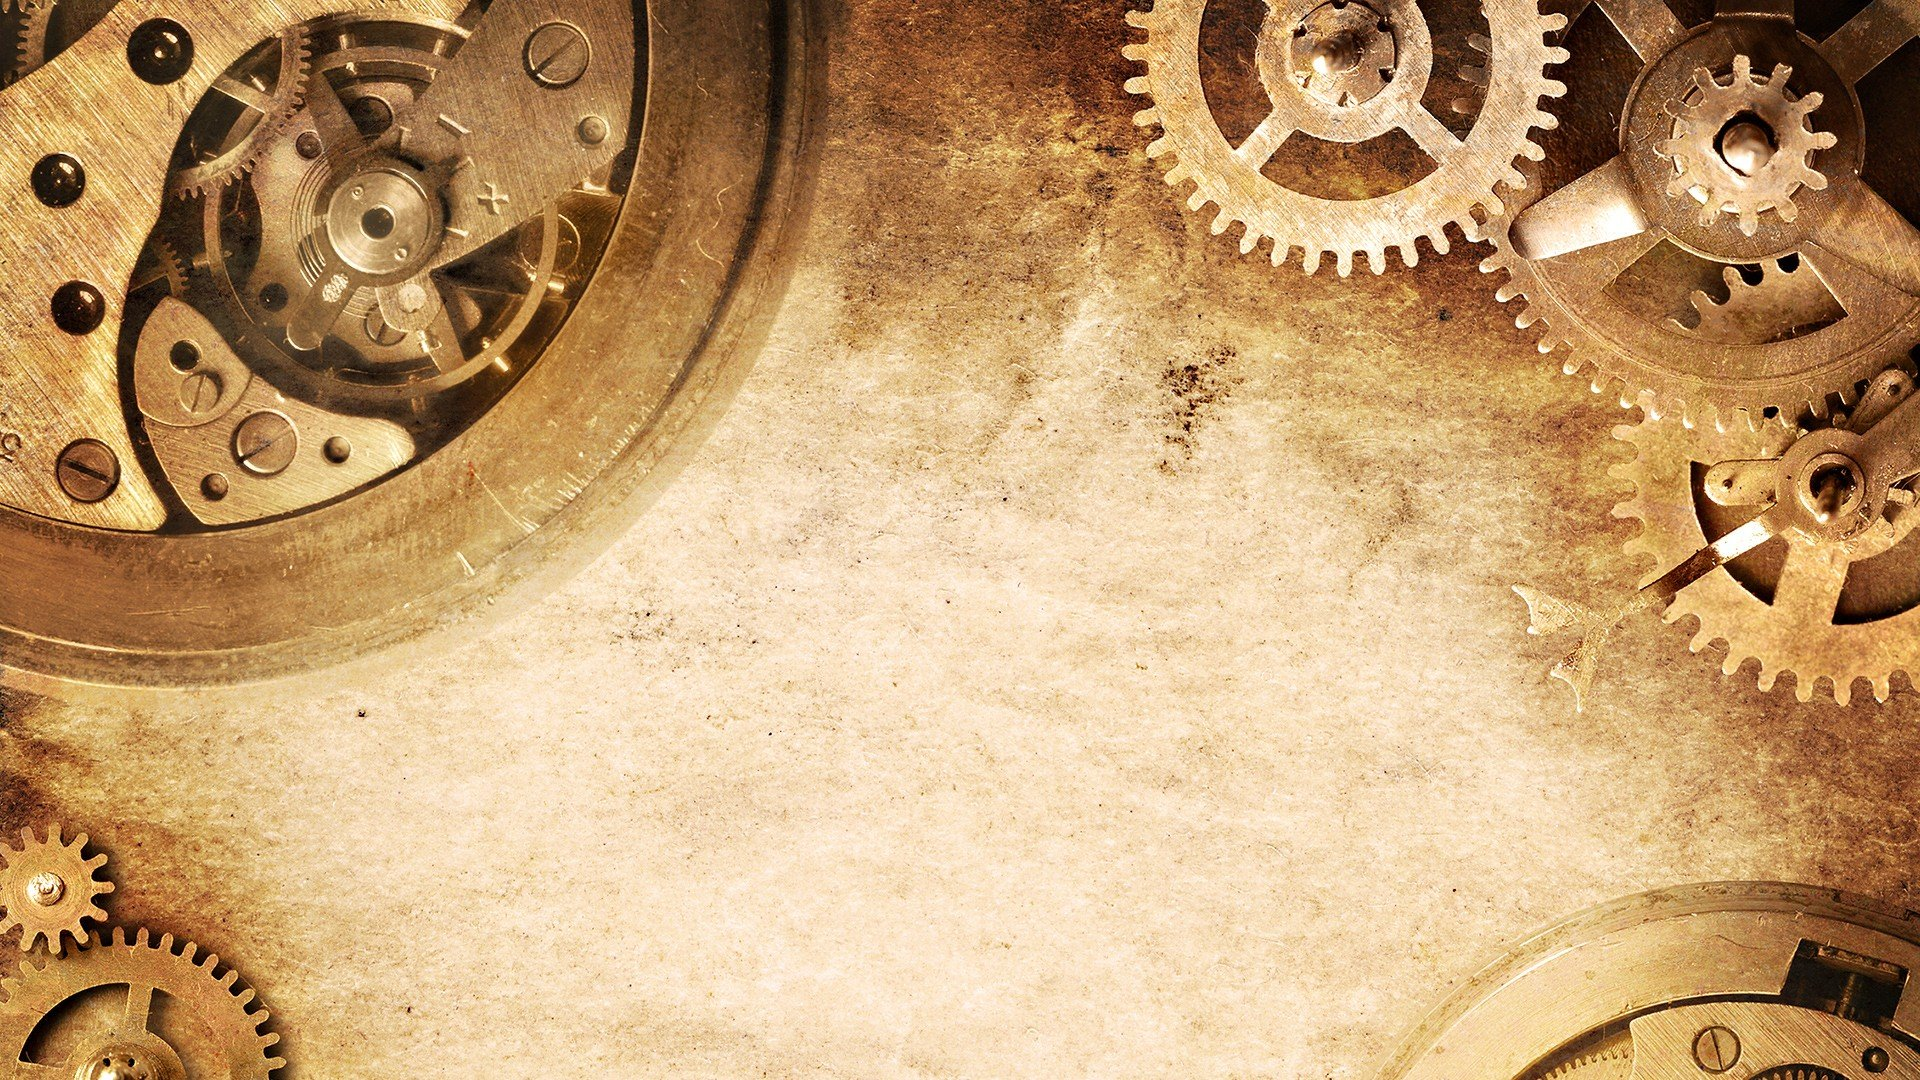 wallpapers gears for-#16